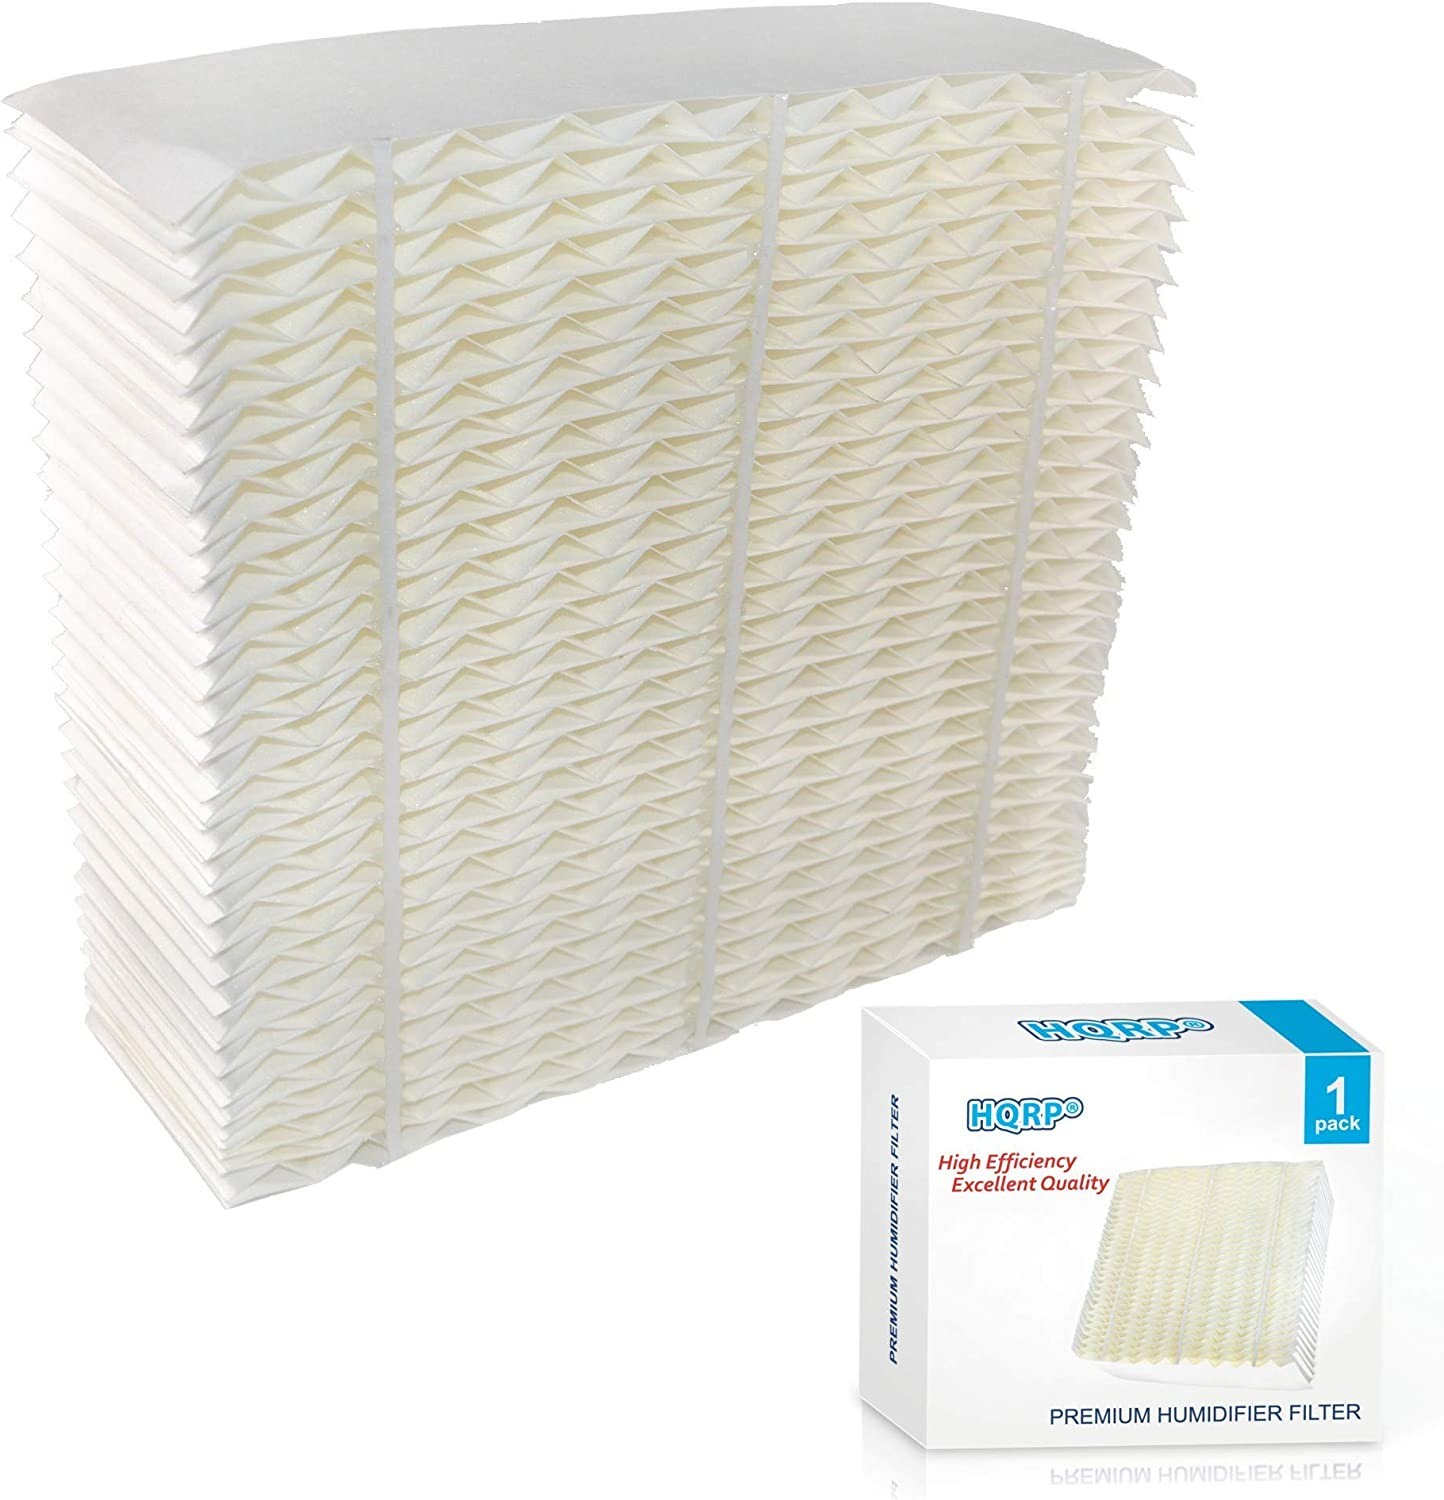 Funmit Humidifier Filter Wick Replacement for Essick Aircare 1043 EP9 EP9R 826 Series and Spacesaver 800 8000 Series Models